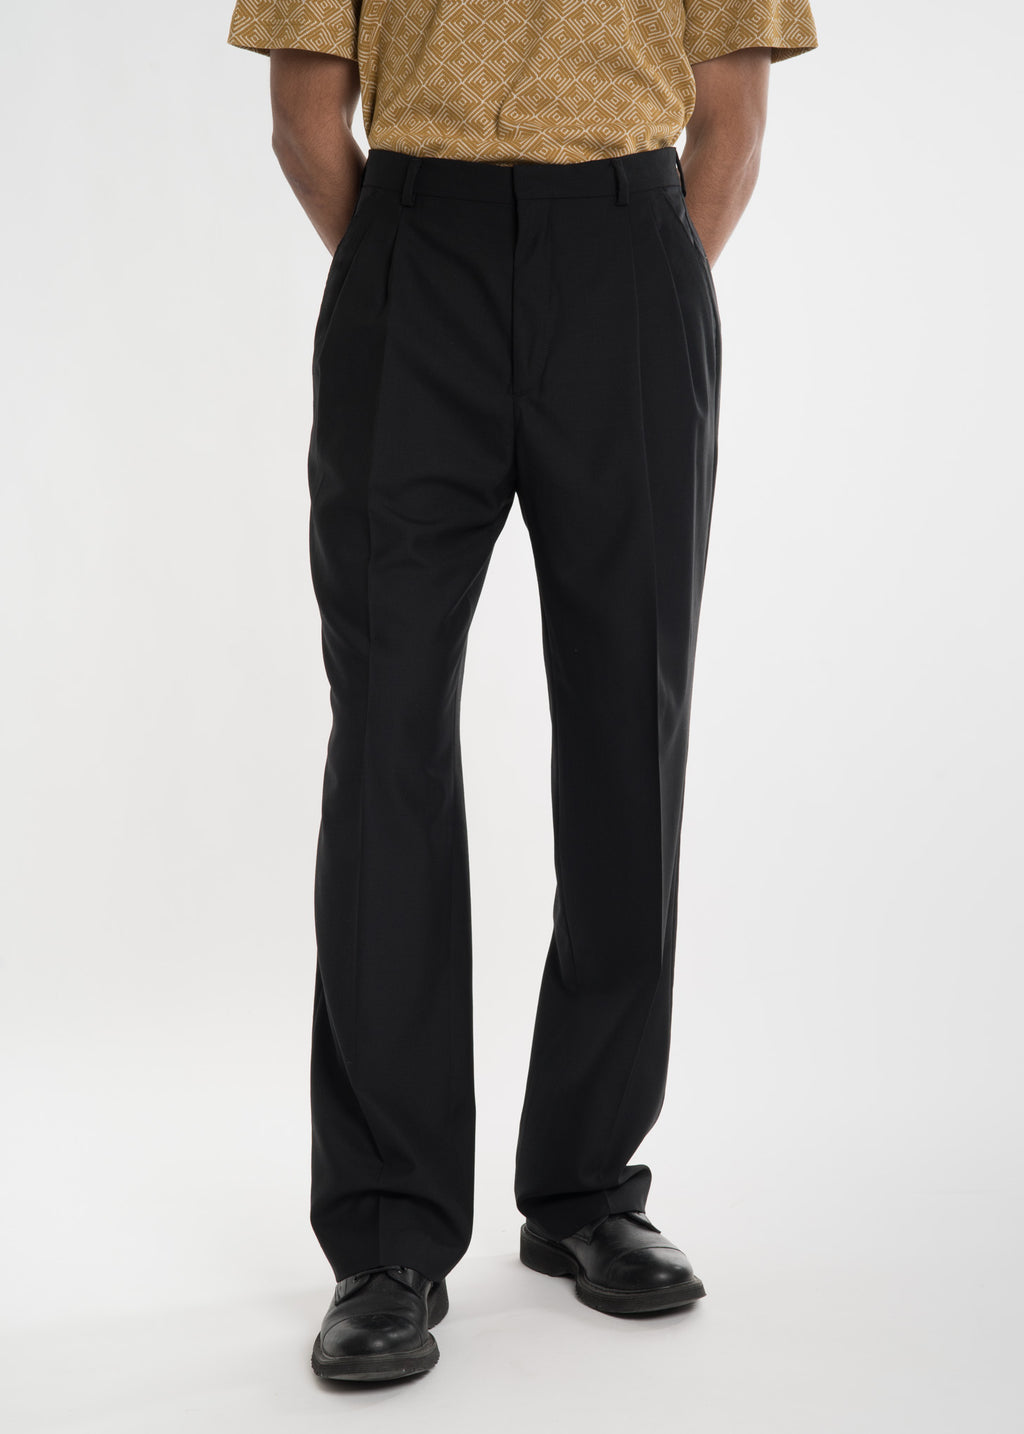 Cmmn Swdn, Black Jay Pleated Trousers, 017 Shop